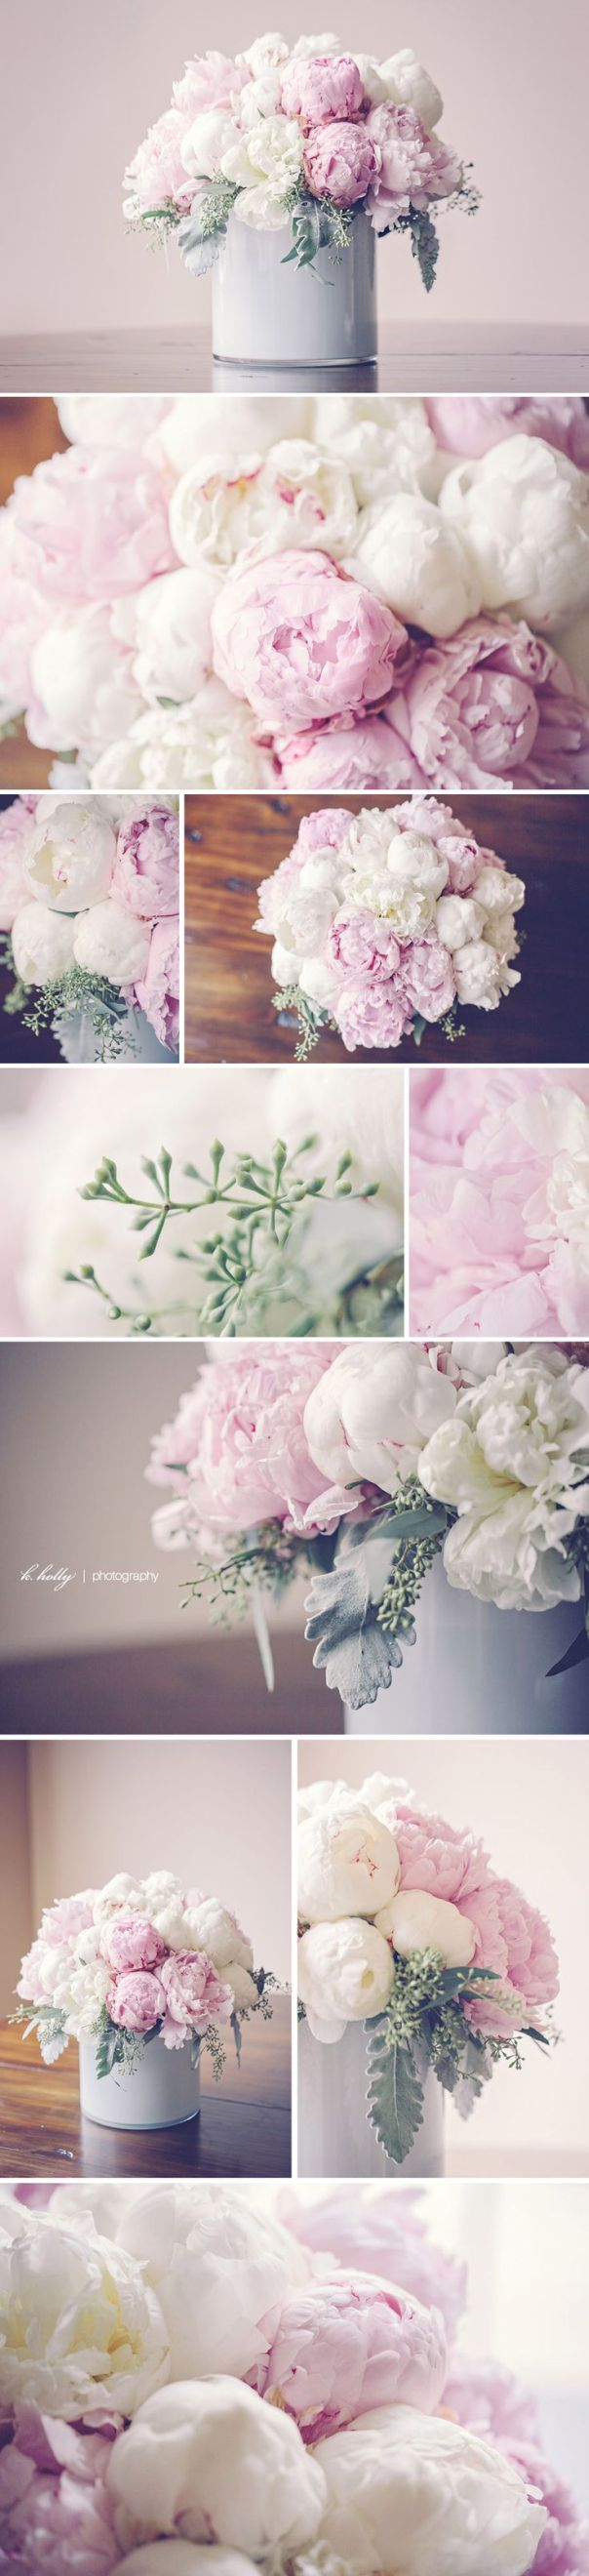 pink and white peonies! | chilean peony bouquet by Modern Day Floral, grand rapids michigan | photographed by k.holly